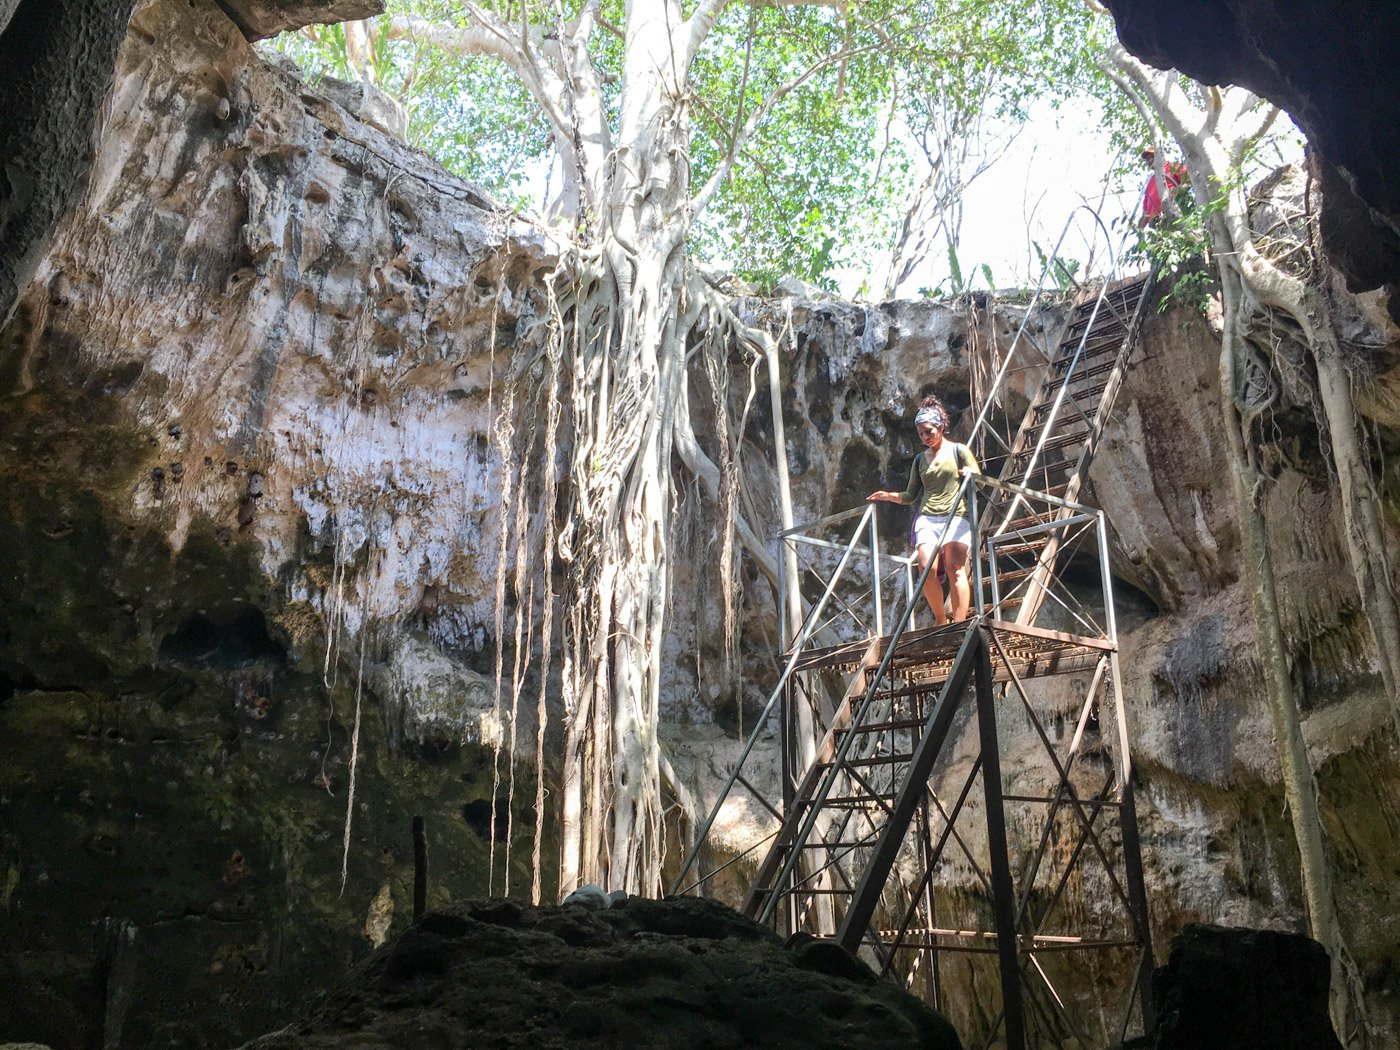 If you're looking to visit some fantastic cenotes near Merida, you should definitely check out the 4 cenotes on the X'tohil Ecotour